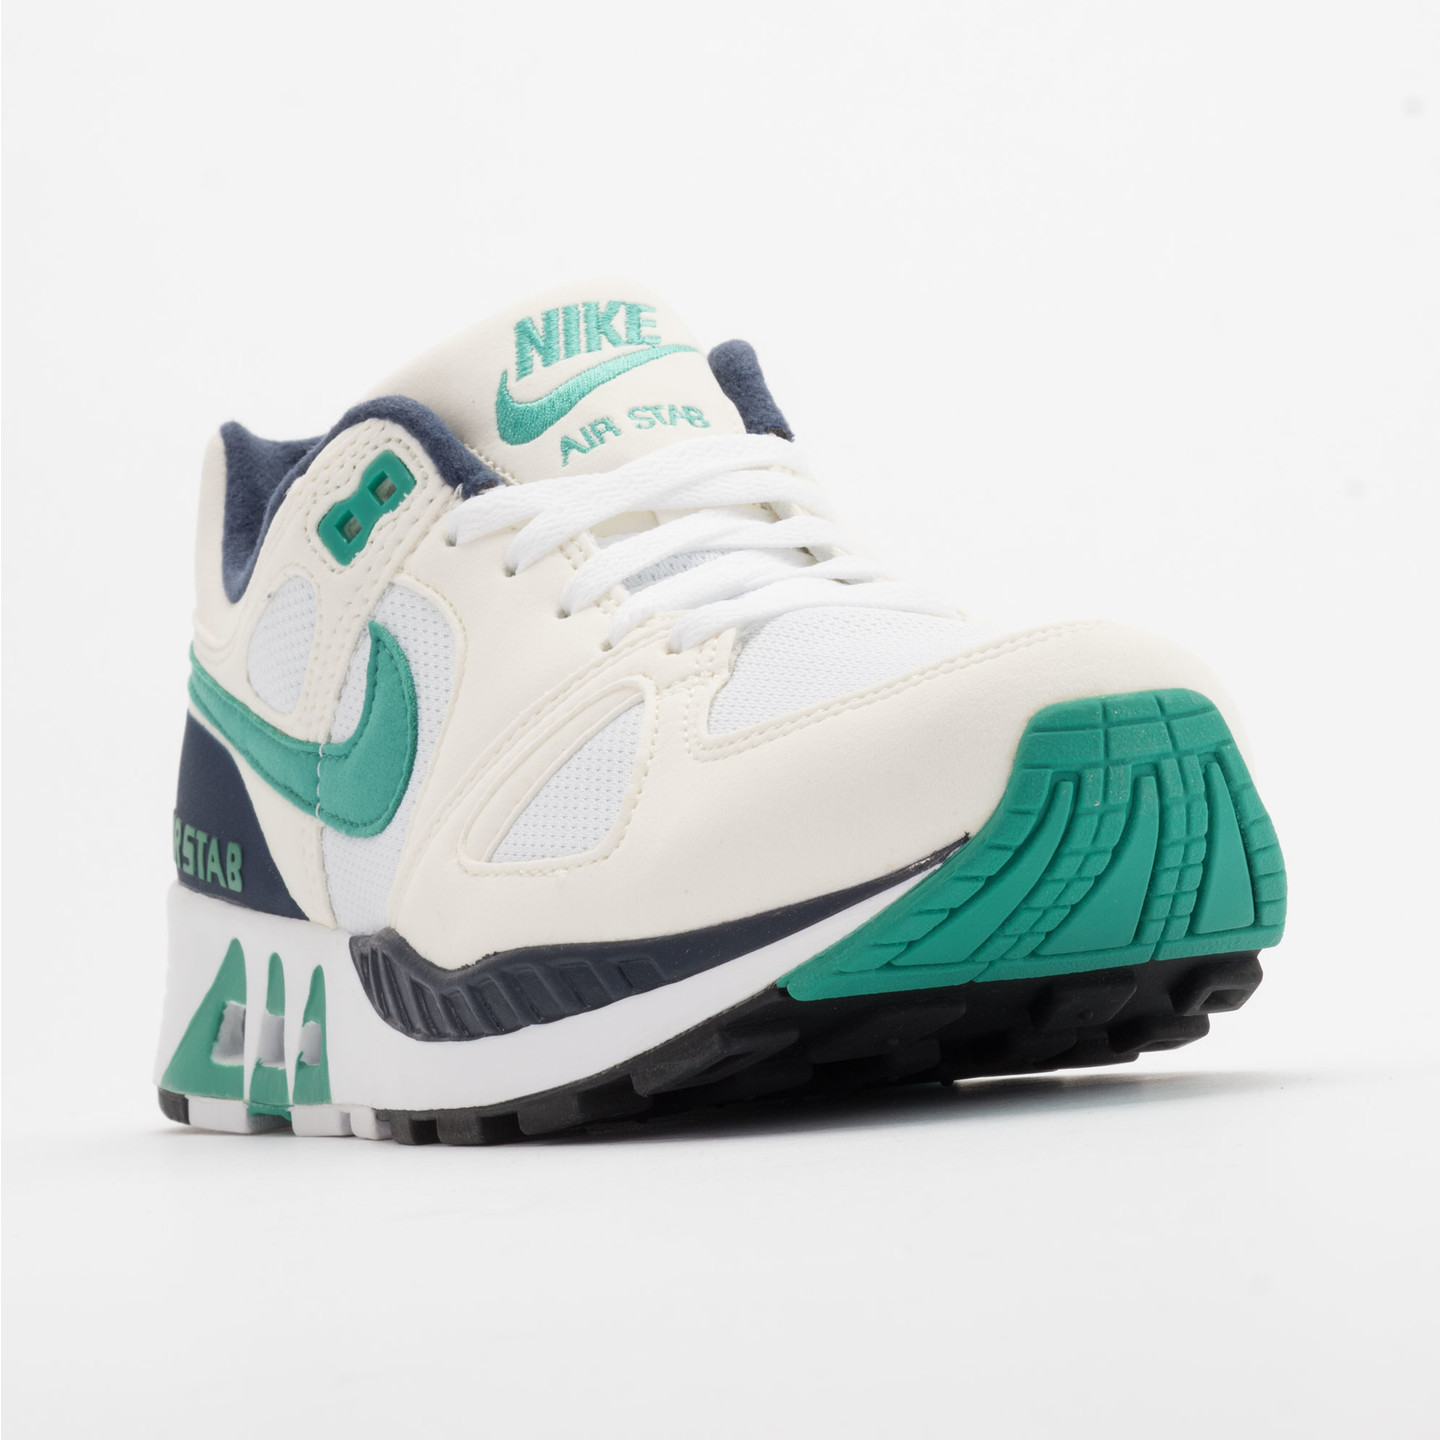 Nike Air Stab White/Emerald Green-Sl-Mid Nvy 312451-100-43